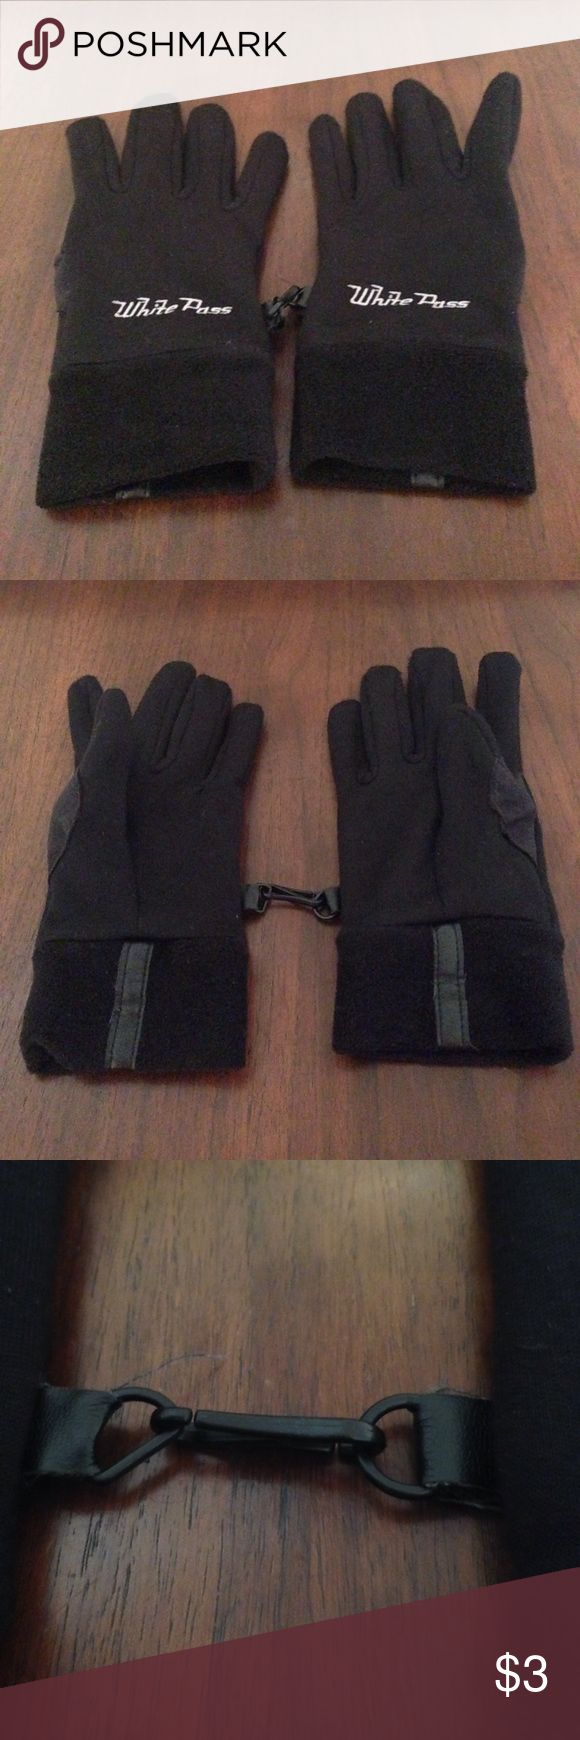 Mens fleece gloves xxl - Black Fleece Gloves